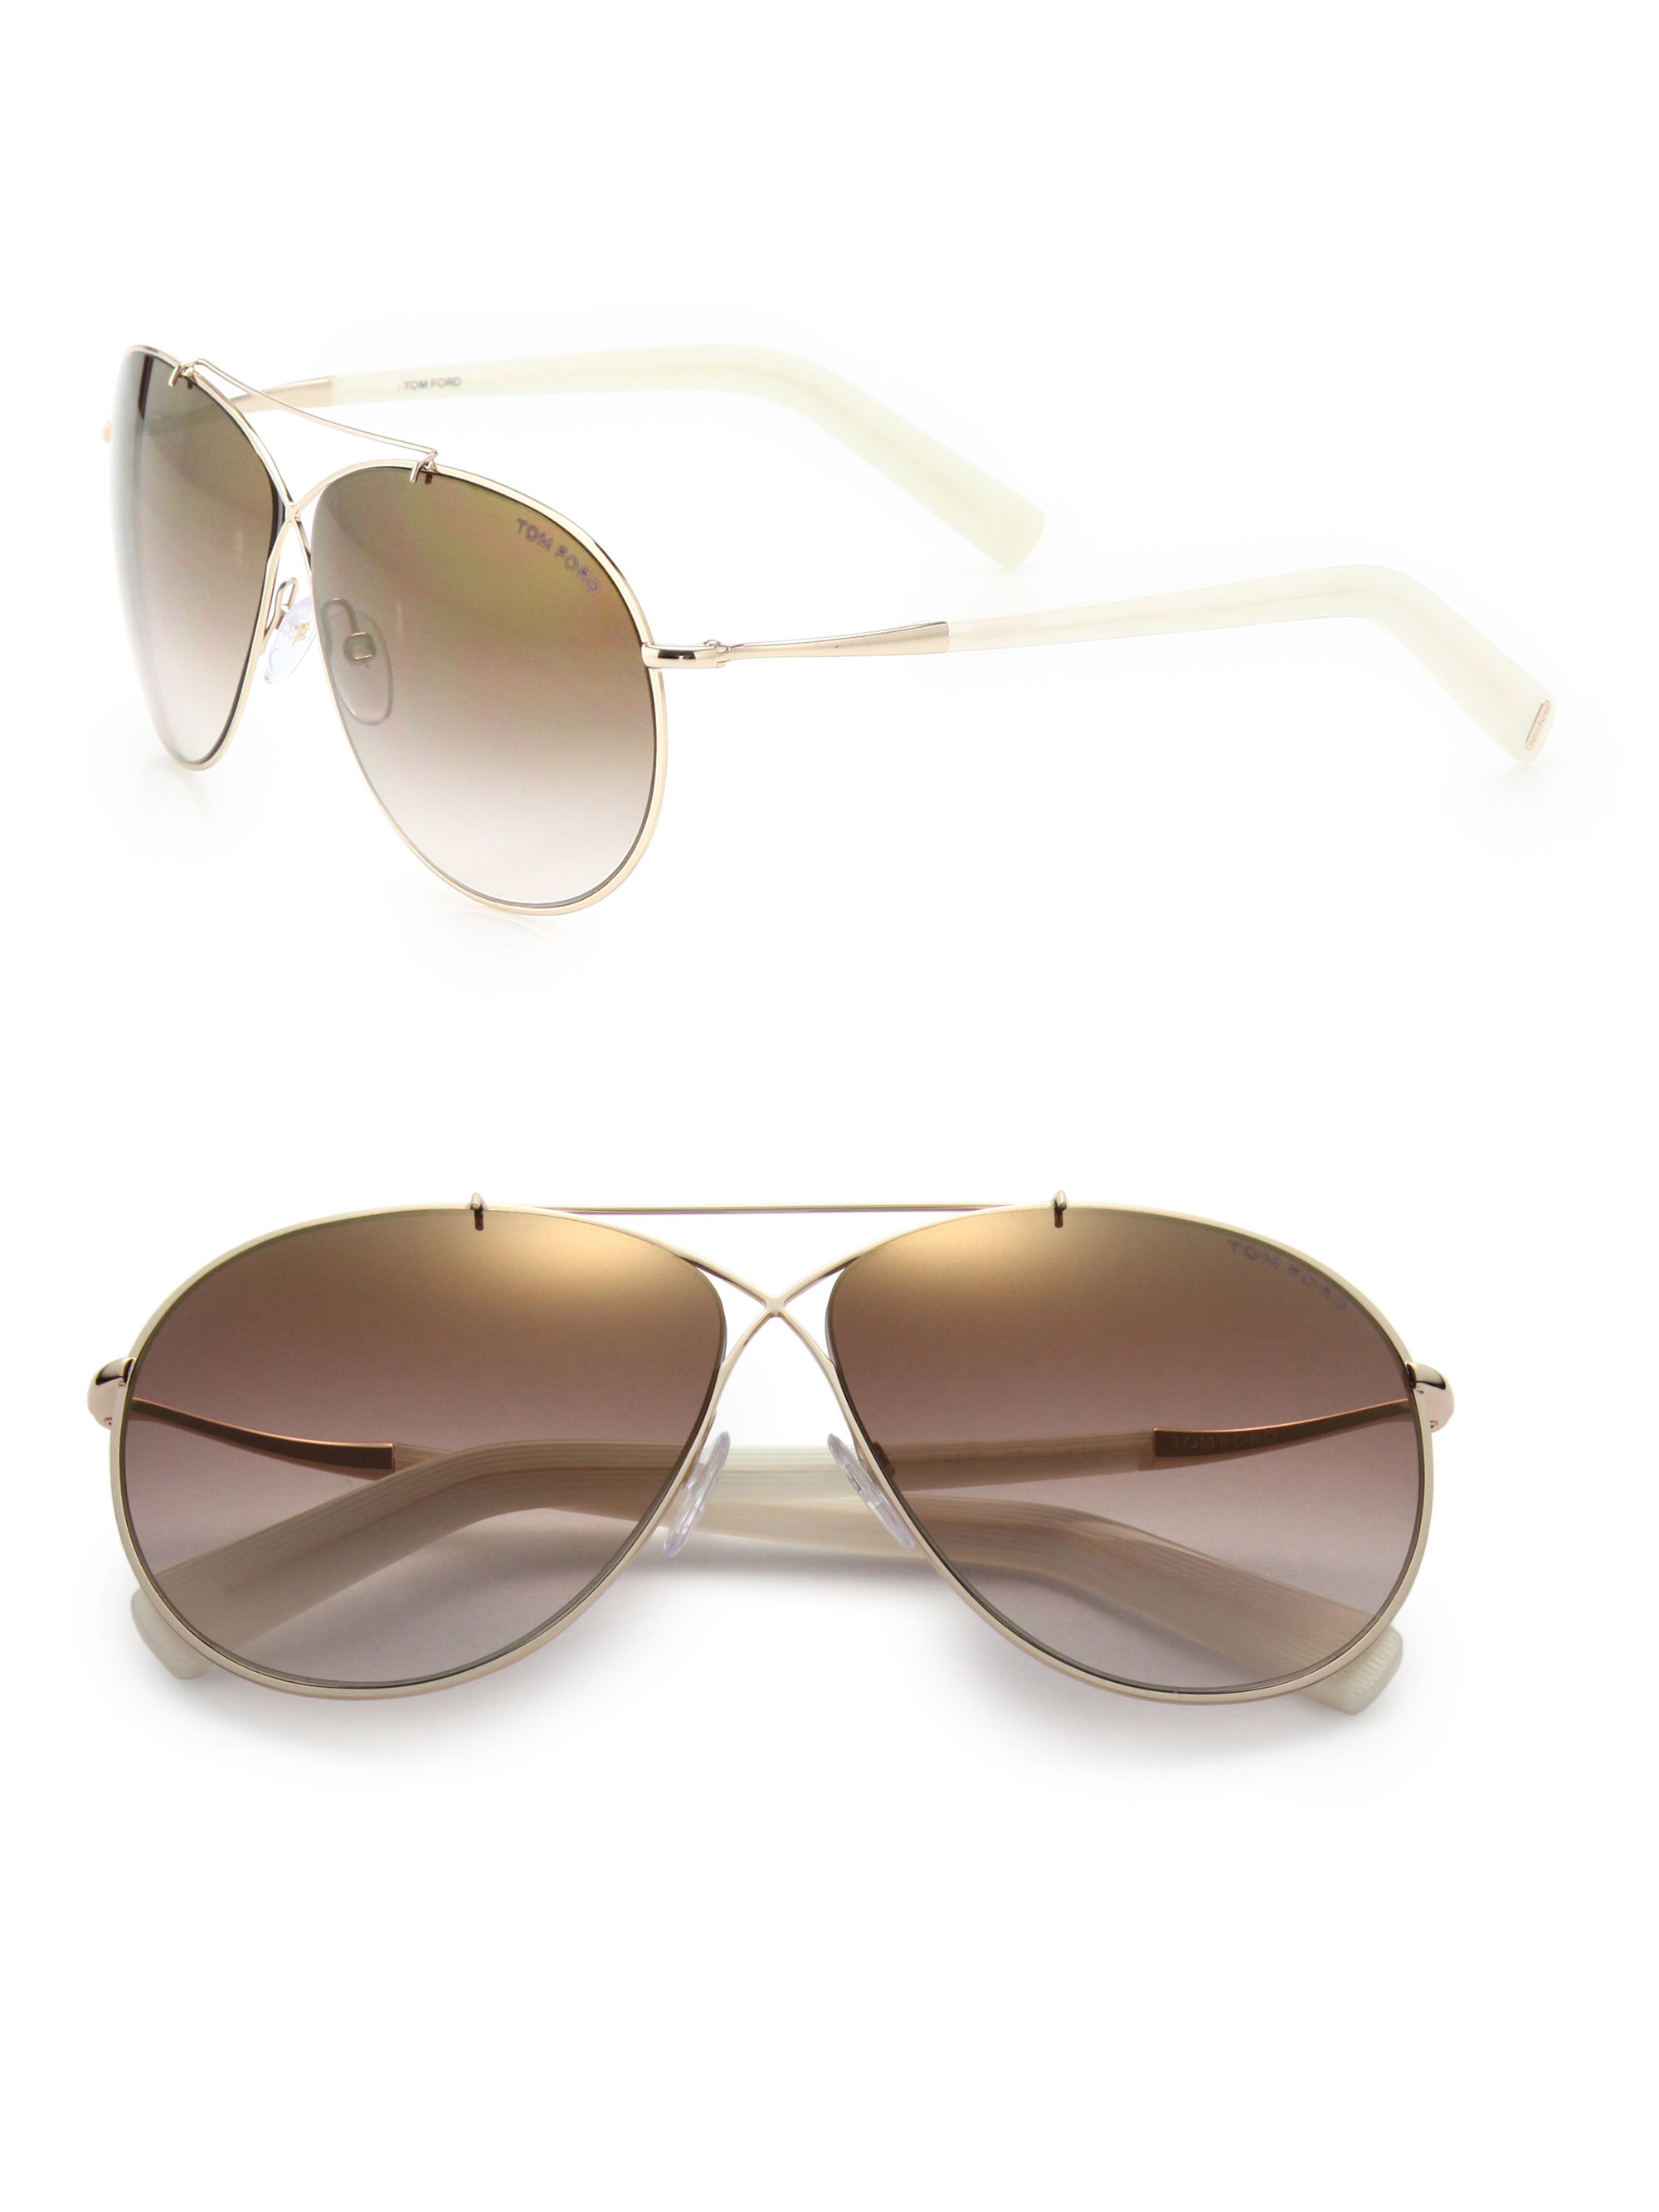 c82c84e141f3c Lyst - Tom Ford Eva 61mm Aviator Sunglasses in Metallic